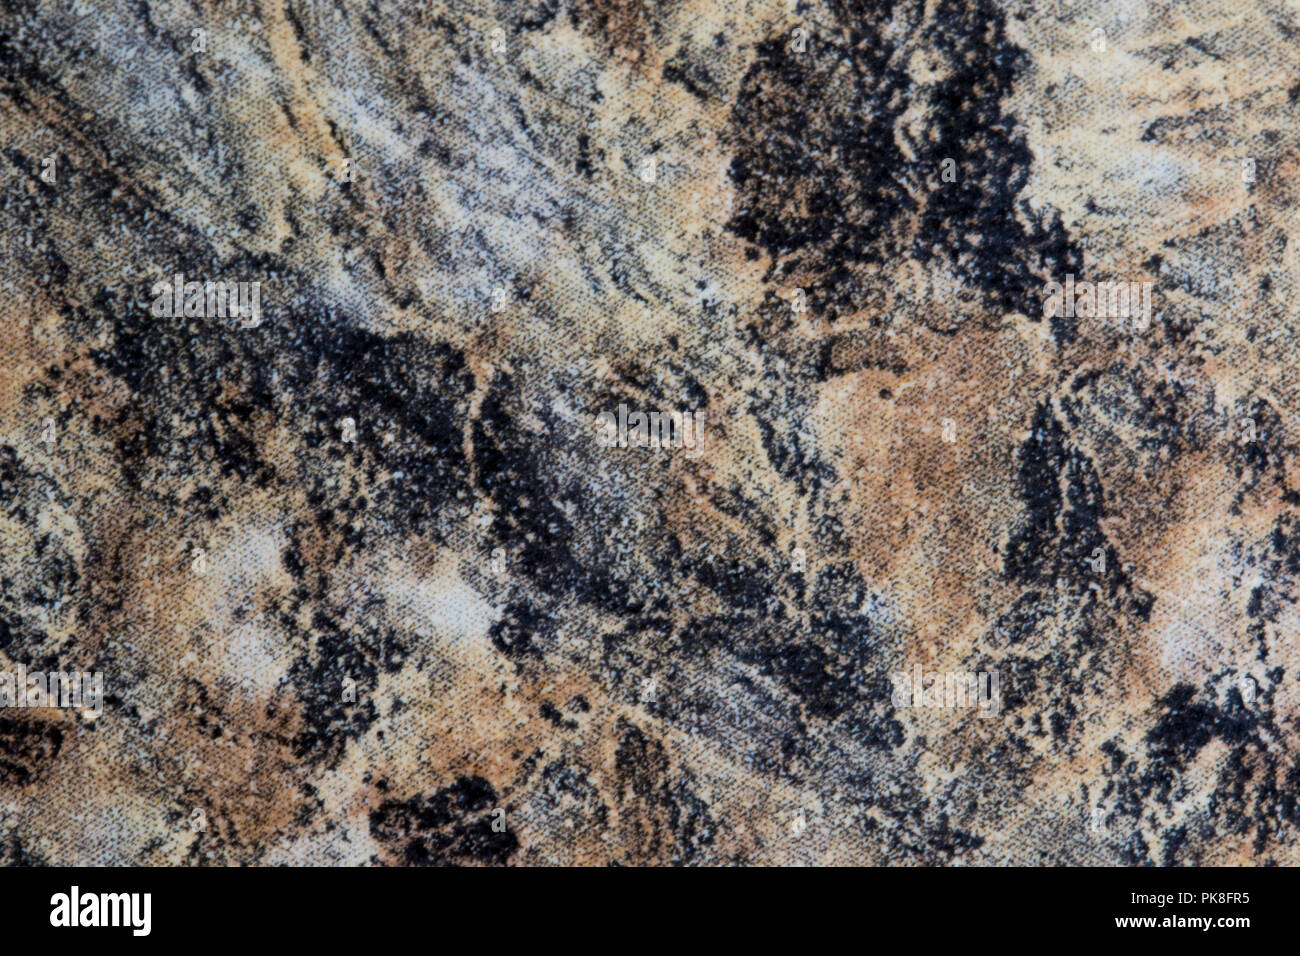 Marble rock surface up close. Natural granite stone design element.  Graphic resource of Stone material. - Stock Image